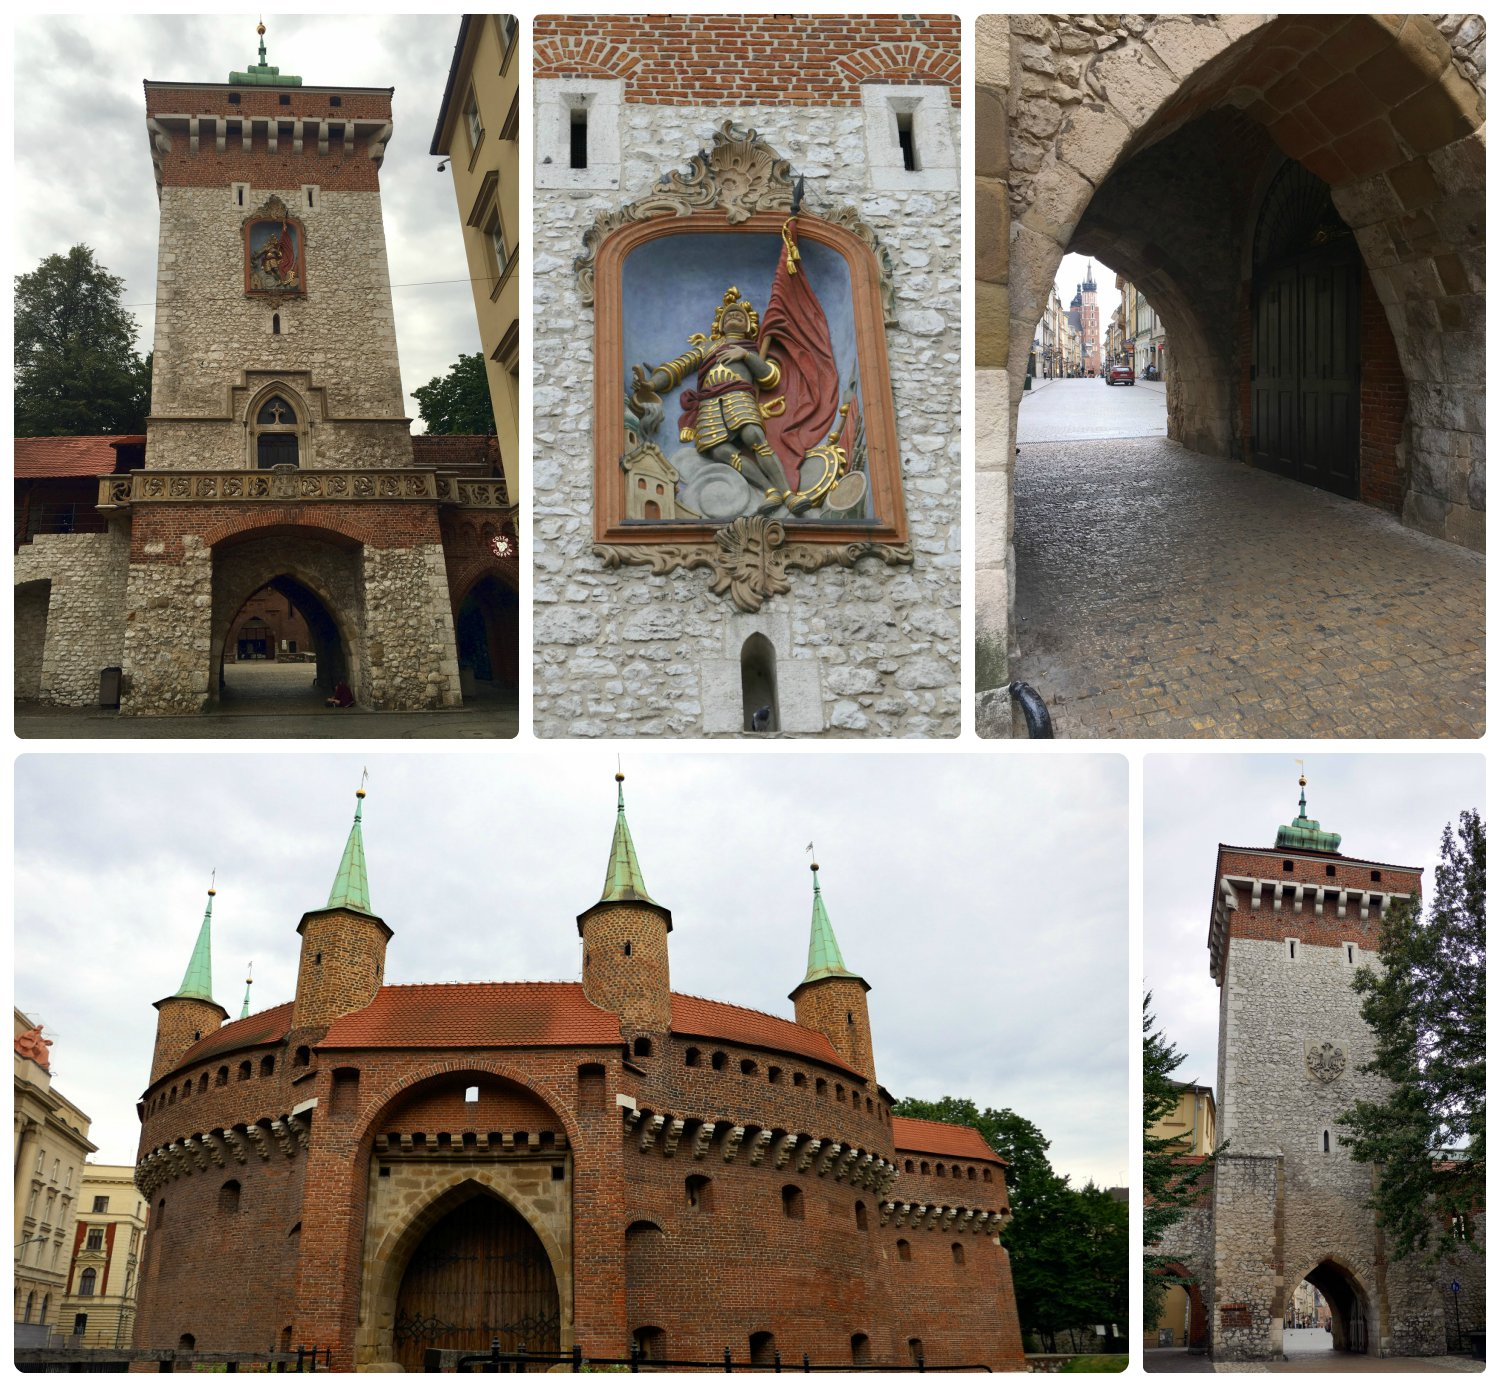 When visiting Krakow, Poland, be sure to take a close look at the Barbican and St. Florian's Gate, the detail is the finishing touch you don't want to miss!